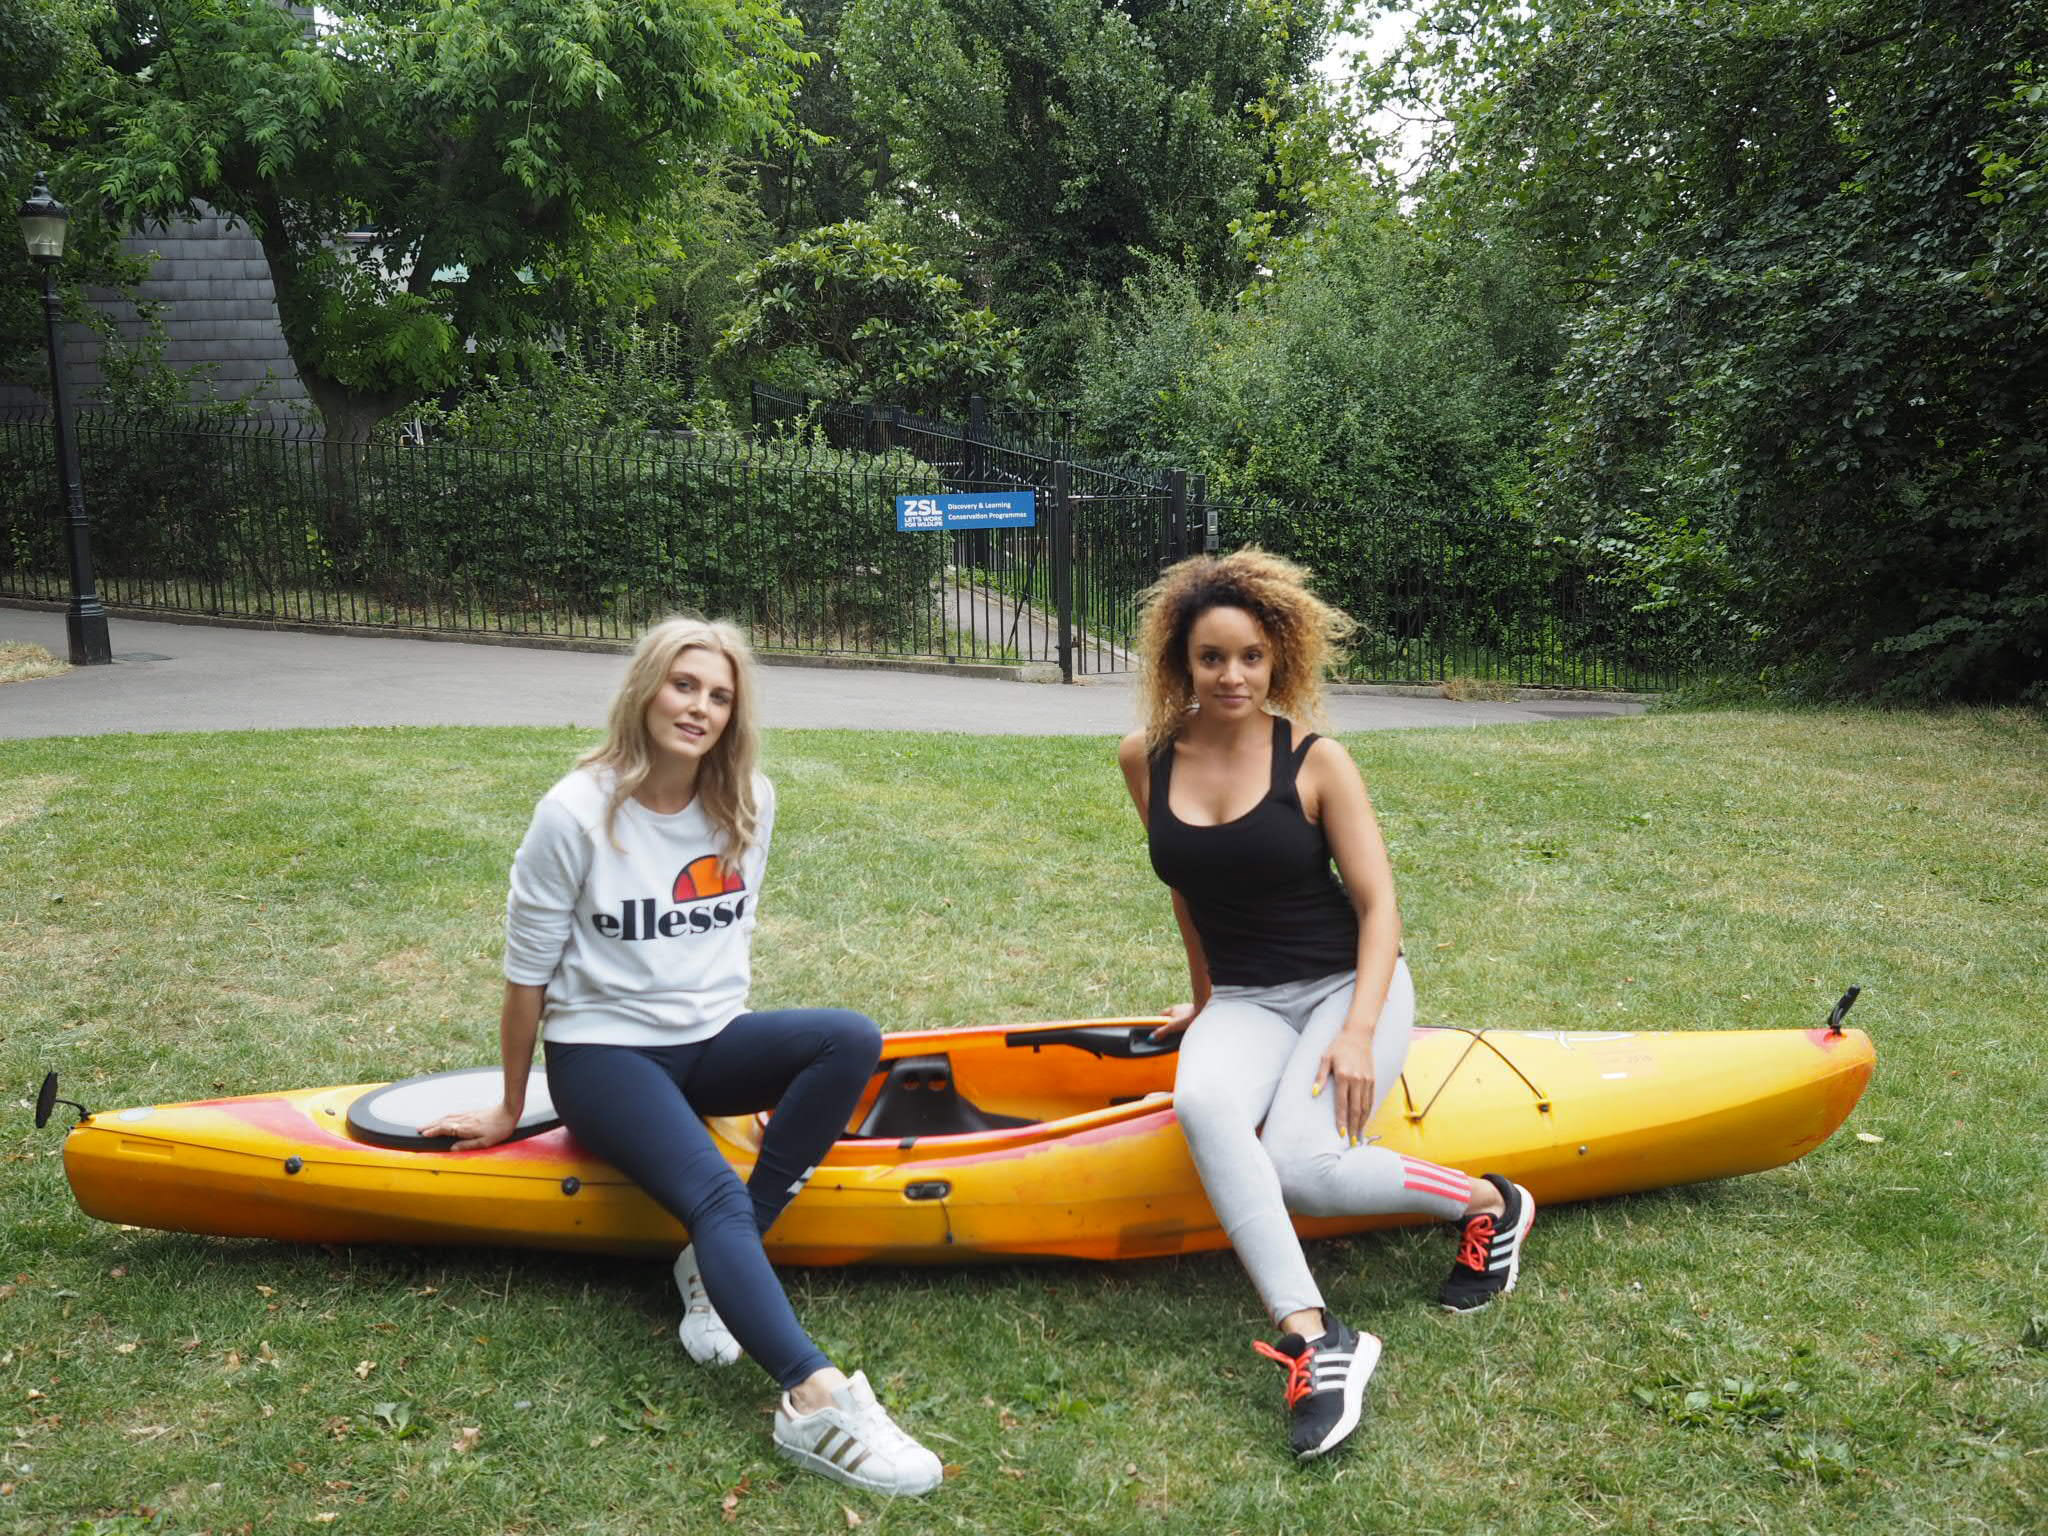 kayaking Ashley James london